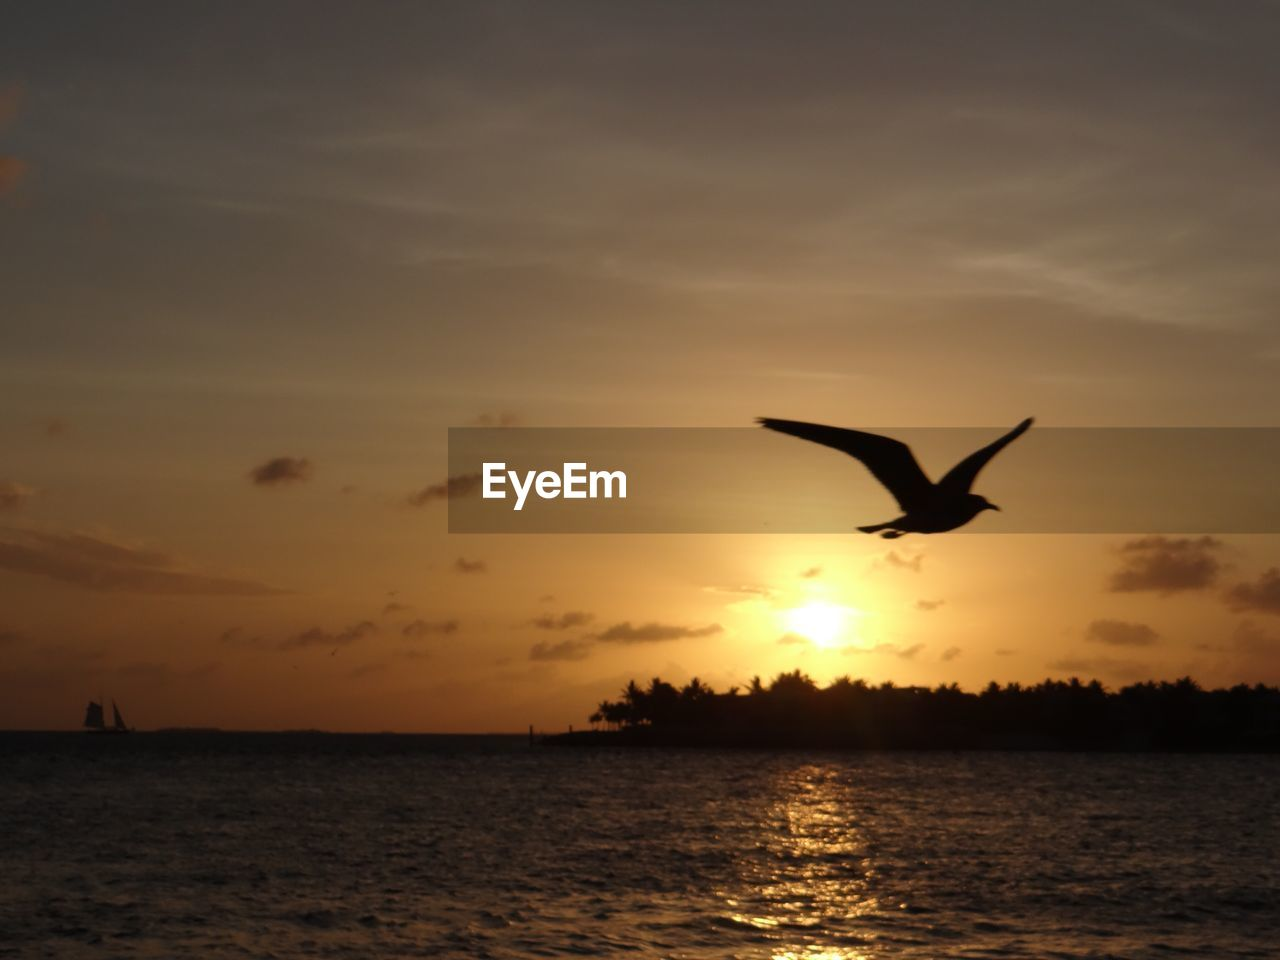 sunset, sky, water, flying, animal, animal themes, bird, beauty in nature, silhouette, vertebrate, animals in the wild, one animal, mid-air, scenics - nature, animal wildlife, cloud - sky, orange color, sea, nature, sun, no people, outdoors